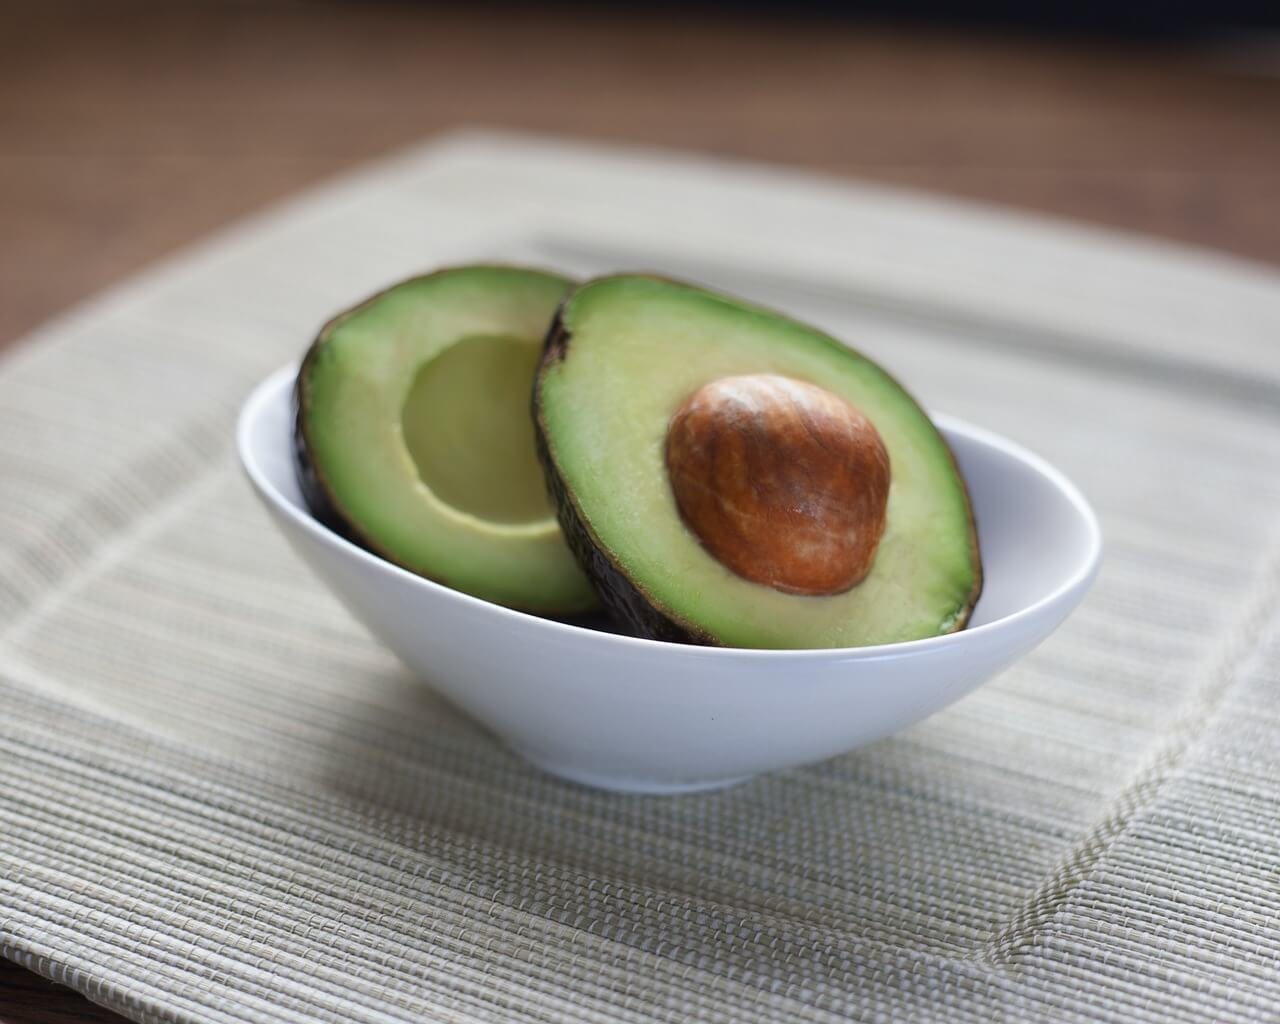 6 Reasons Why Avocados Are Good for You